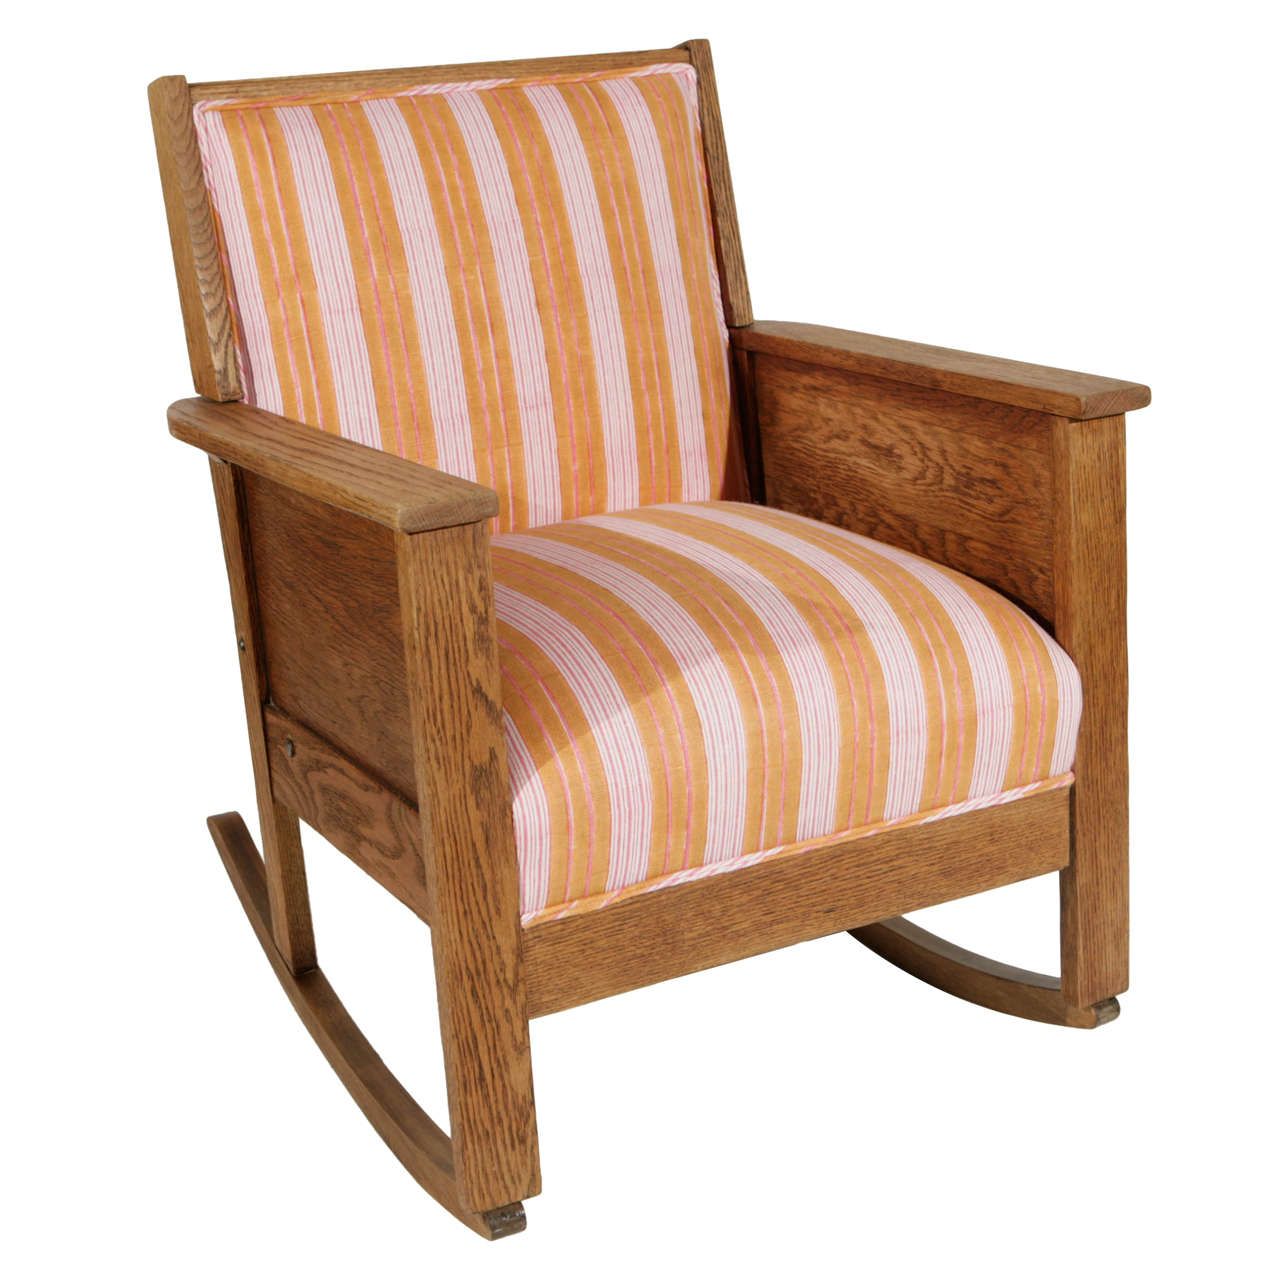 Superieur Late 19th Century American Craftsman Mission Style Oak Rocking Chair For  Sale